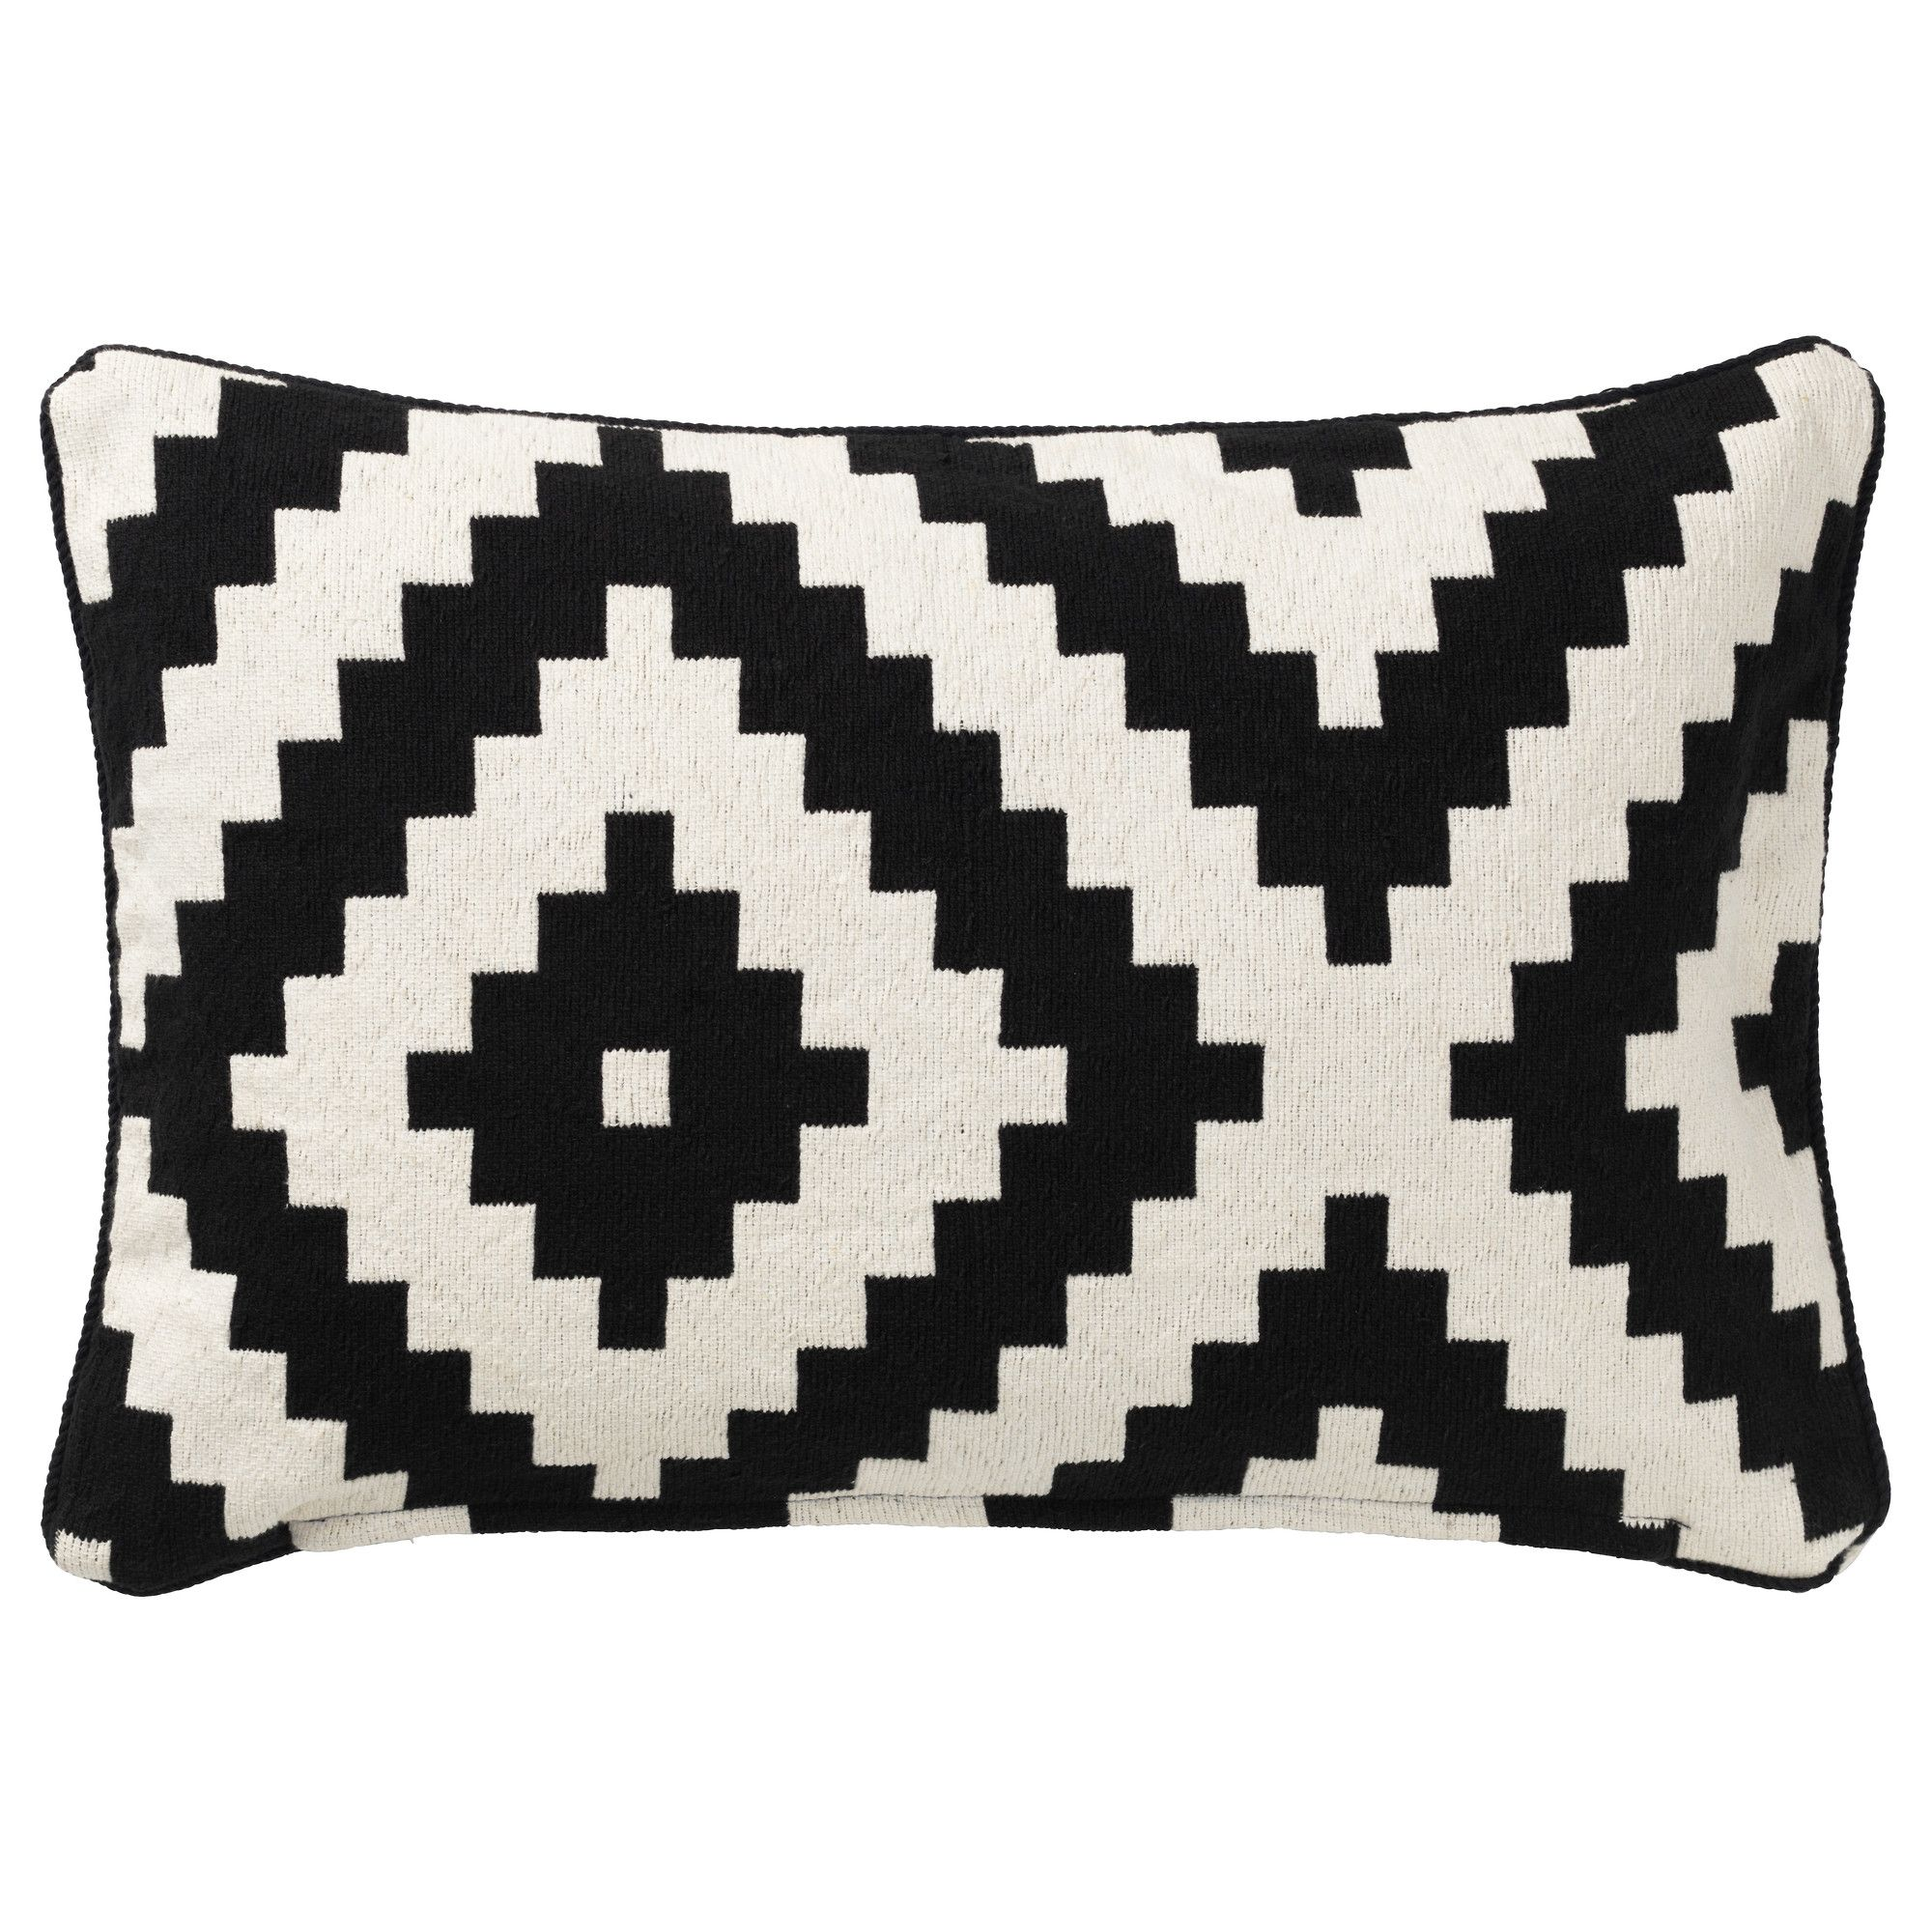 lappljung ruta cushion cover white black ikea playroom ikea